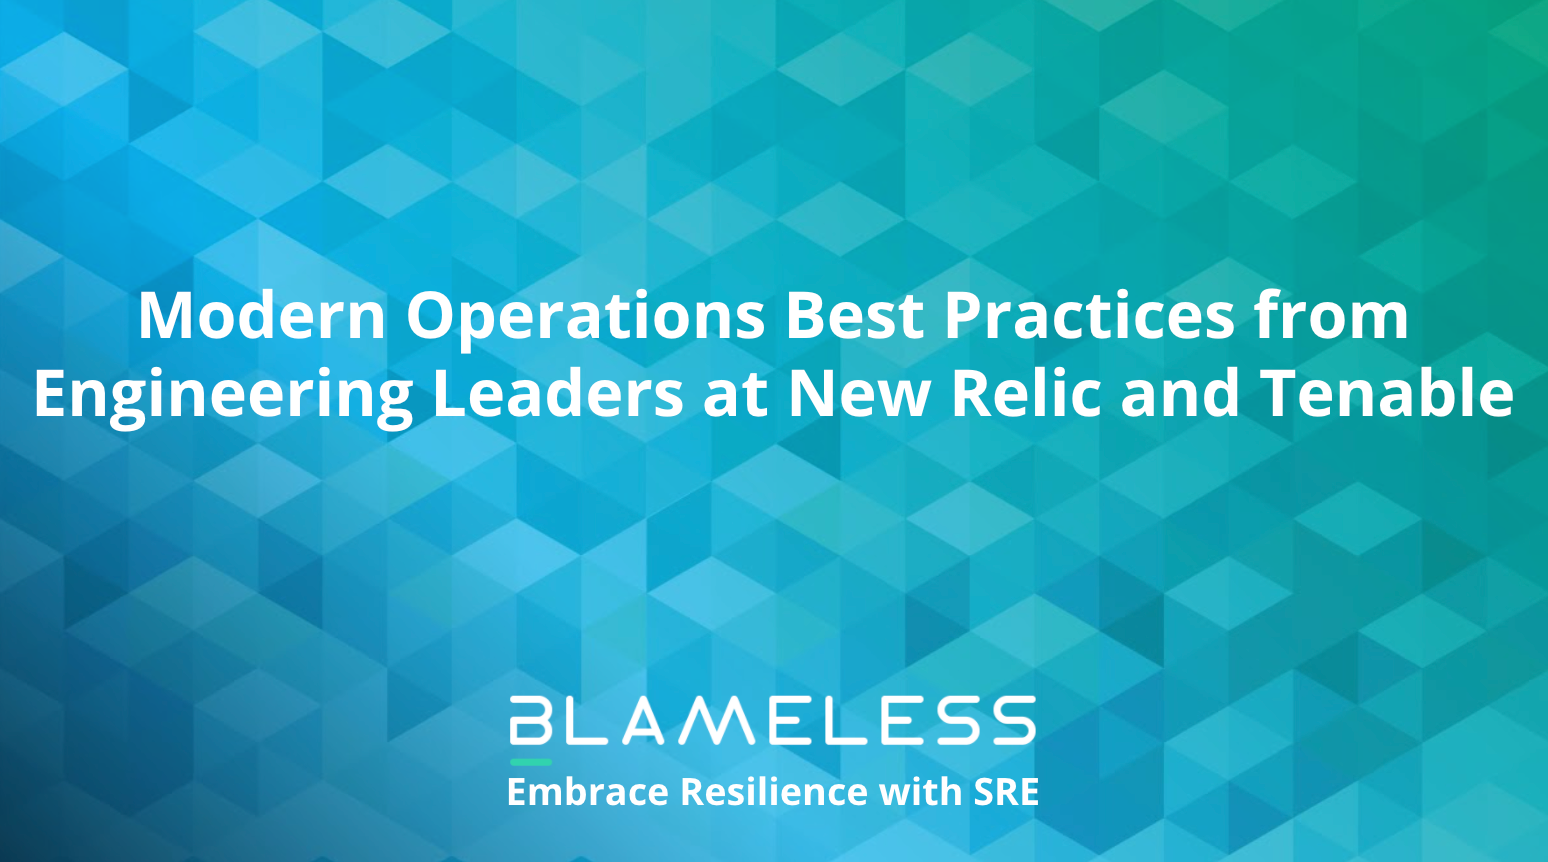 Modern Operations Best Practices from Engineering Leaders at New Relic and Tenable